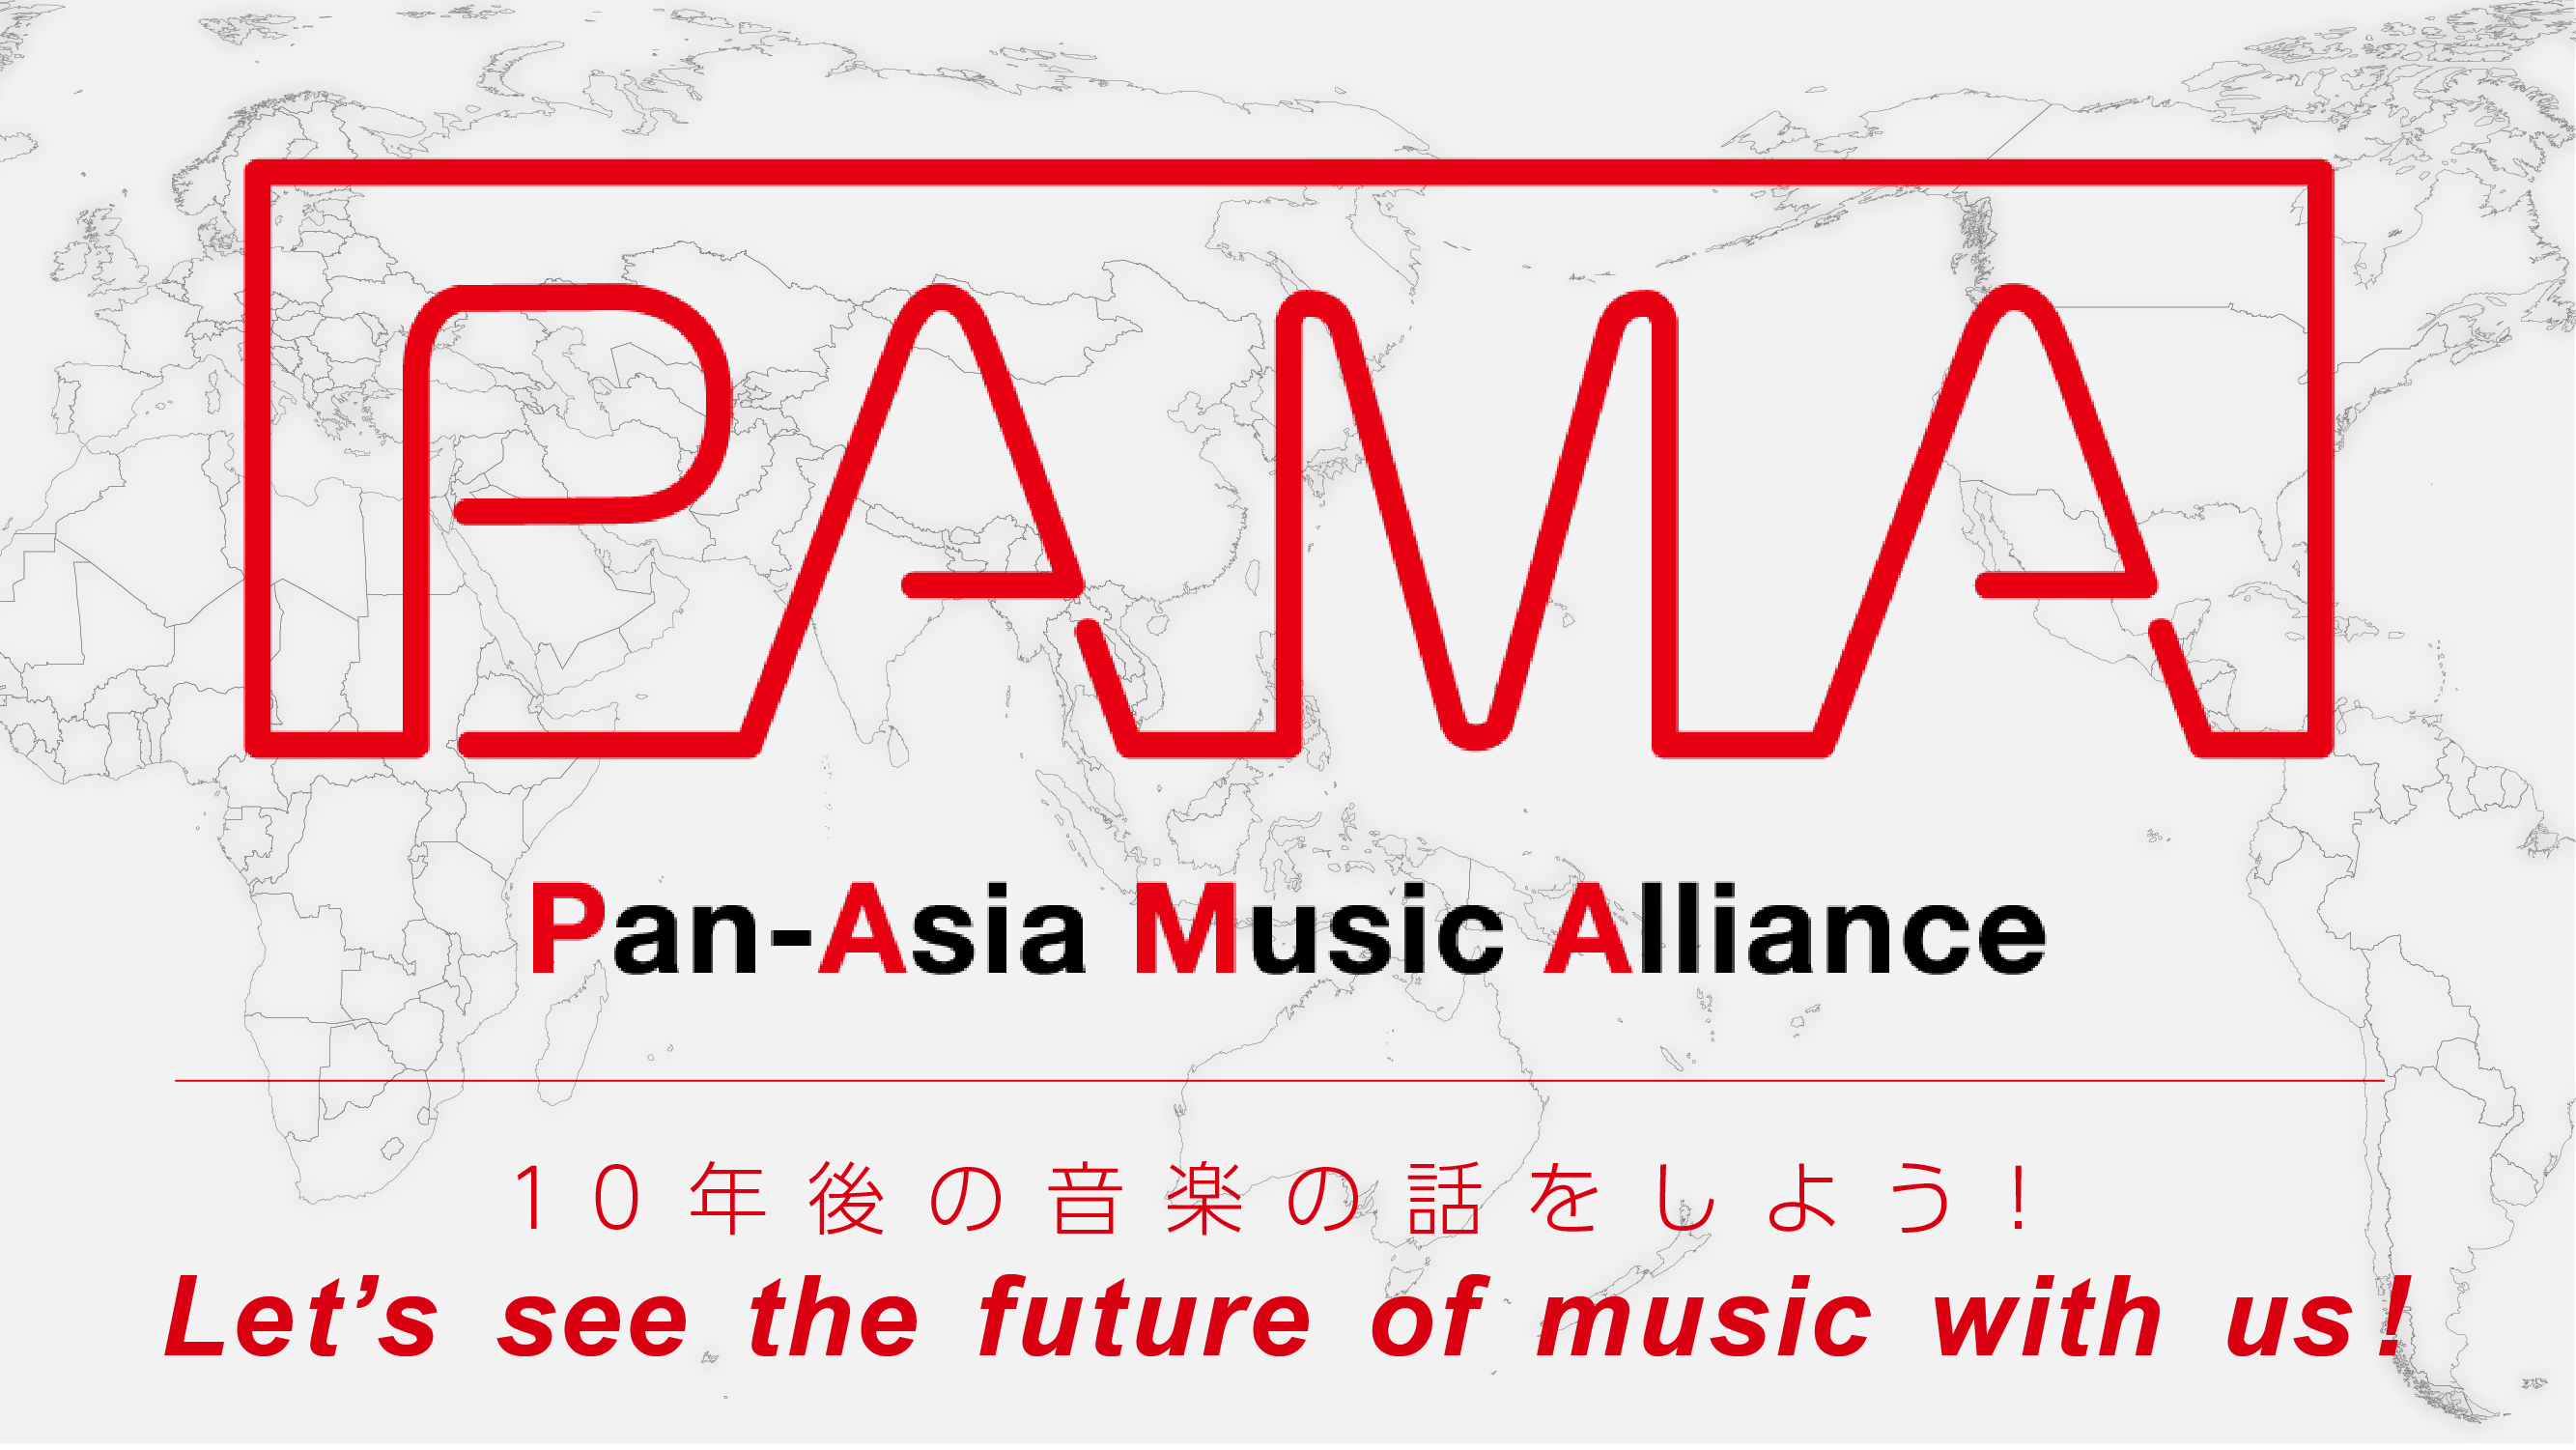 Pan-Asia Music Alliance